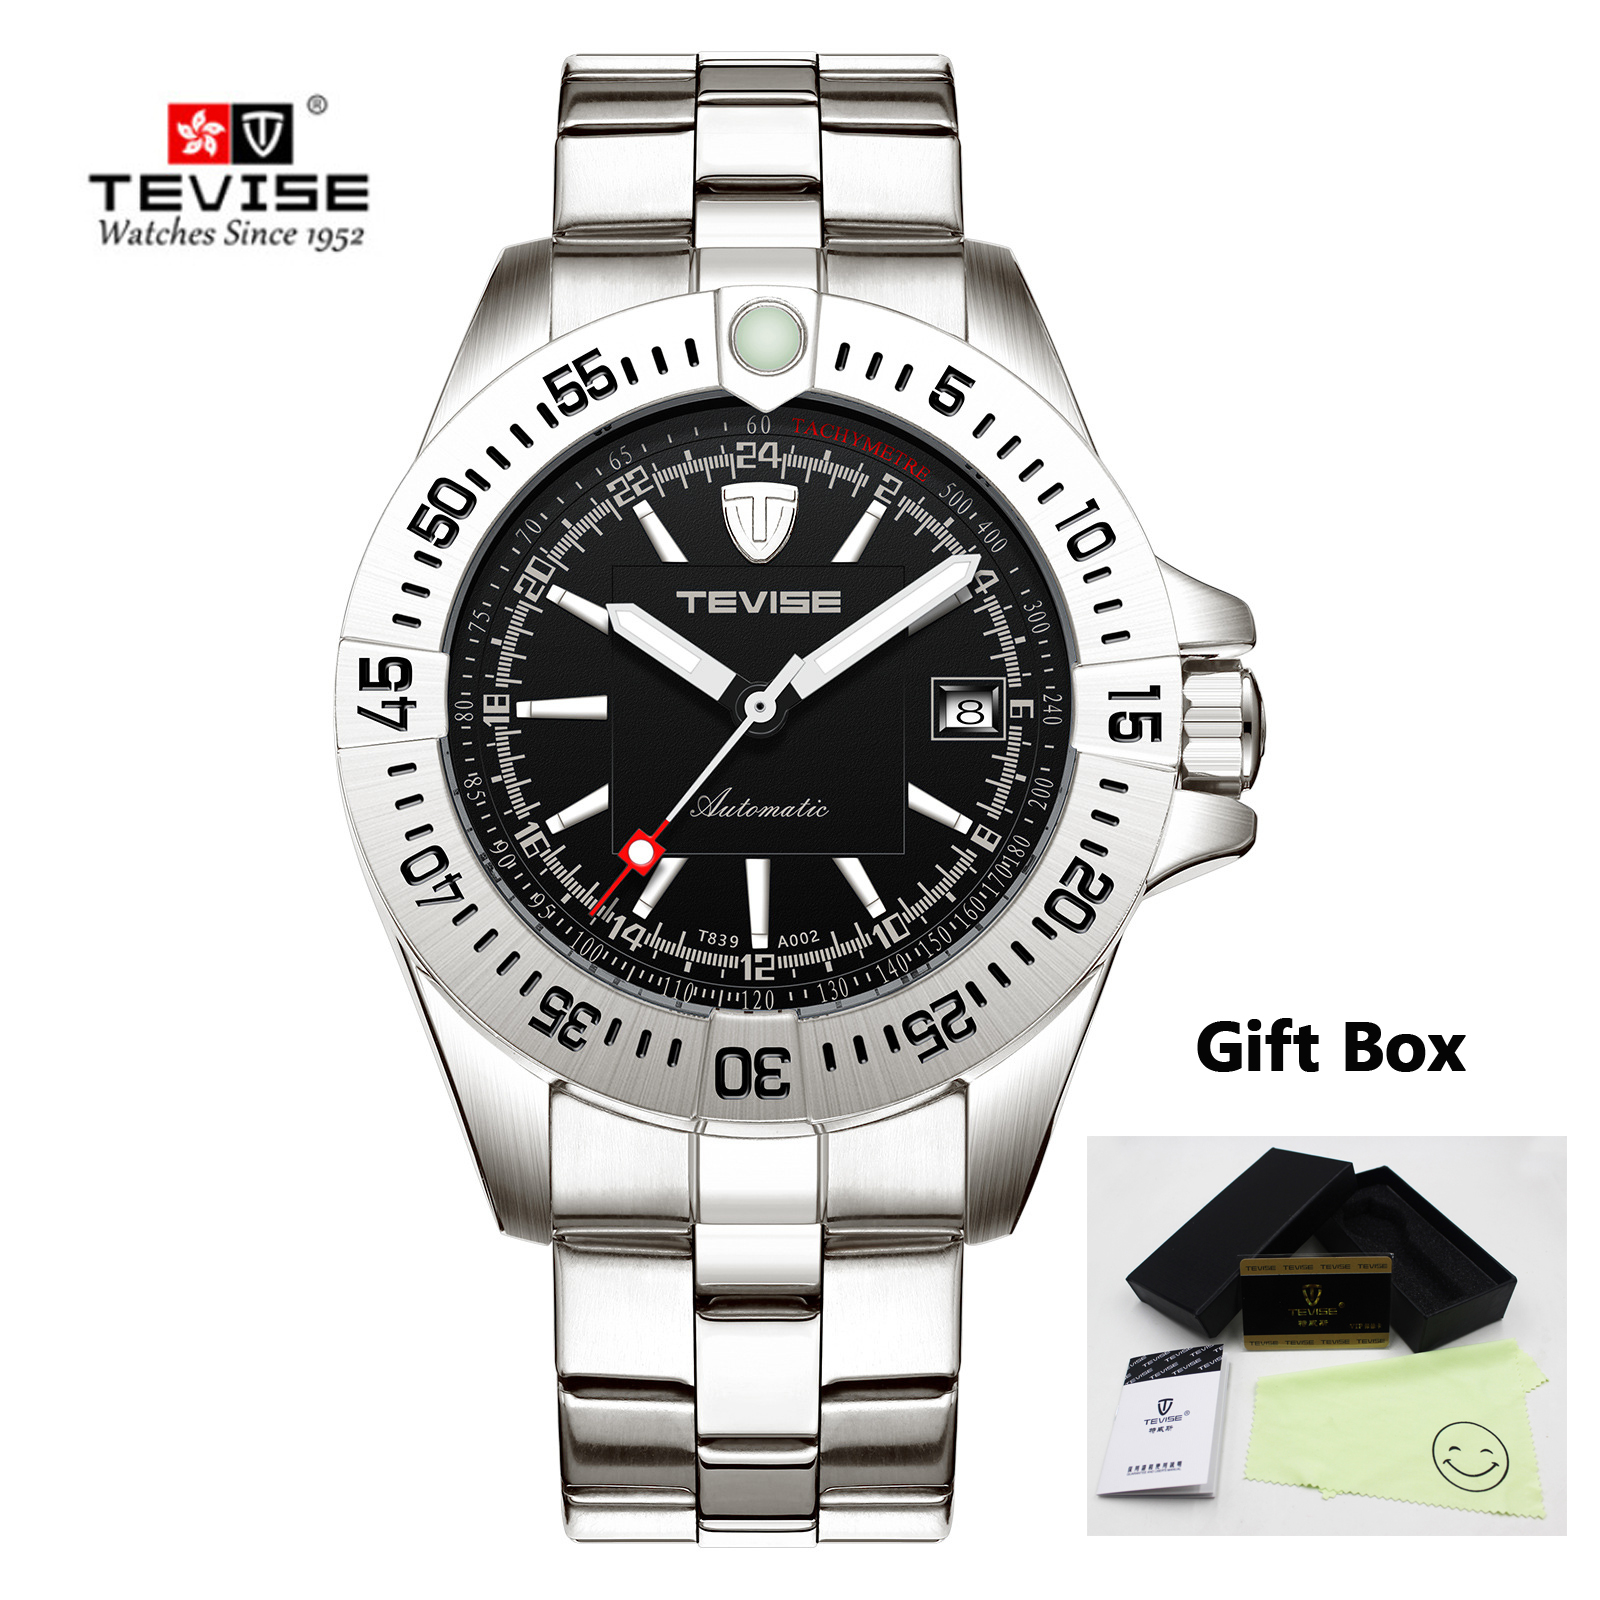 Relogio Tevise Men Watch Automatic Mechanical Watches Men Business Wristwatches Clock Masculino With Gift box Reloj hombre 2019Relogio Tevise Men Watch Automatic Mechanical Watches Men Business Wristwatches Clock Masculino With Gift box Reloj hombre 2019